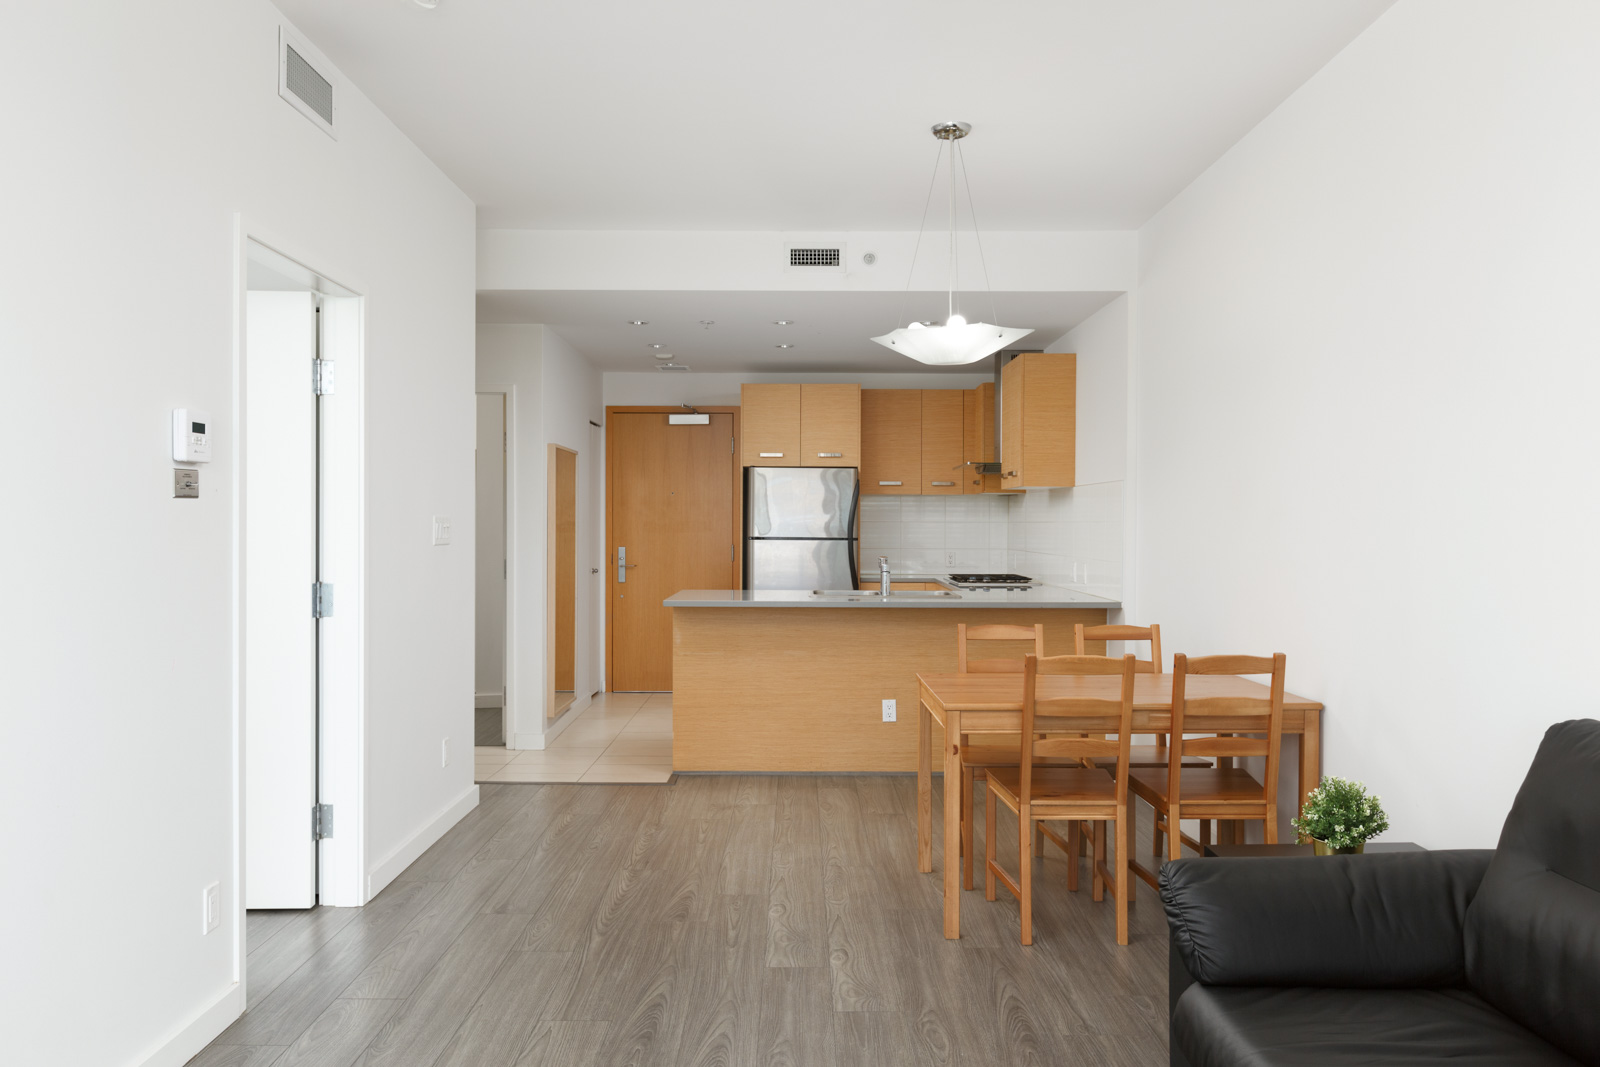 Spacious kitchen leading into open living room area with natural lighting and laminate hardwood flooring in a rental condo in Richmond offered by Birds Nest Properties